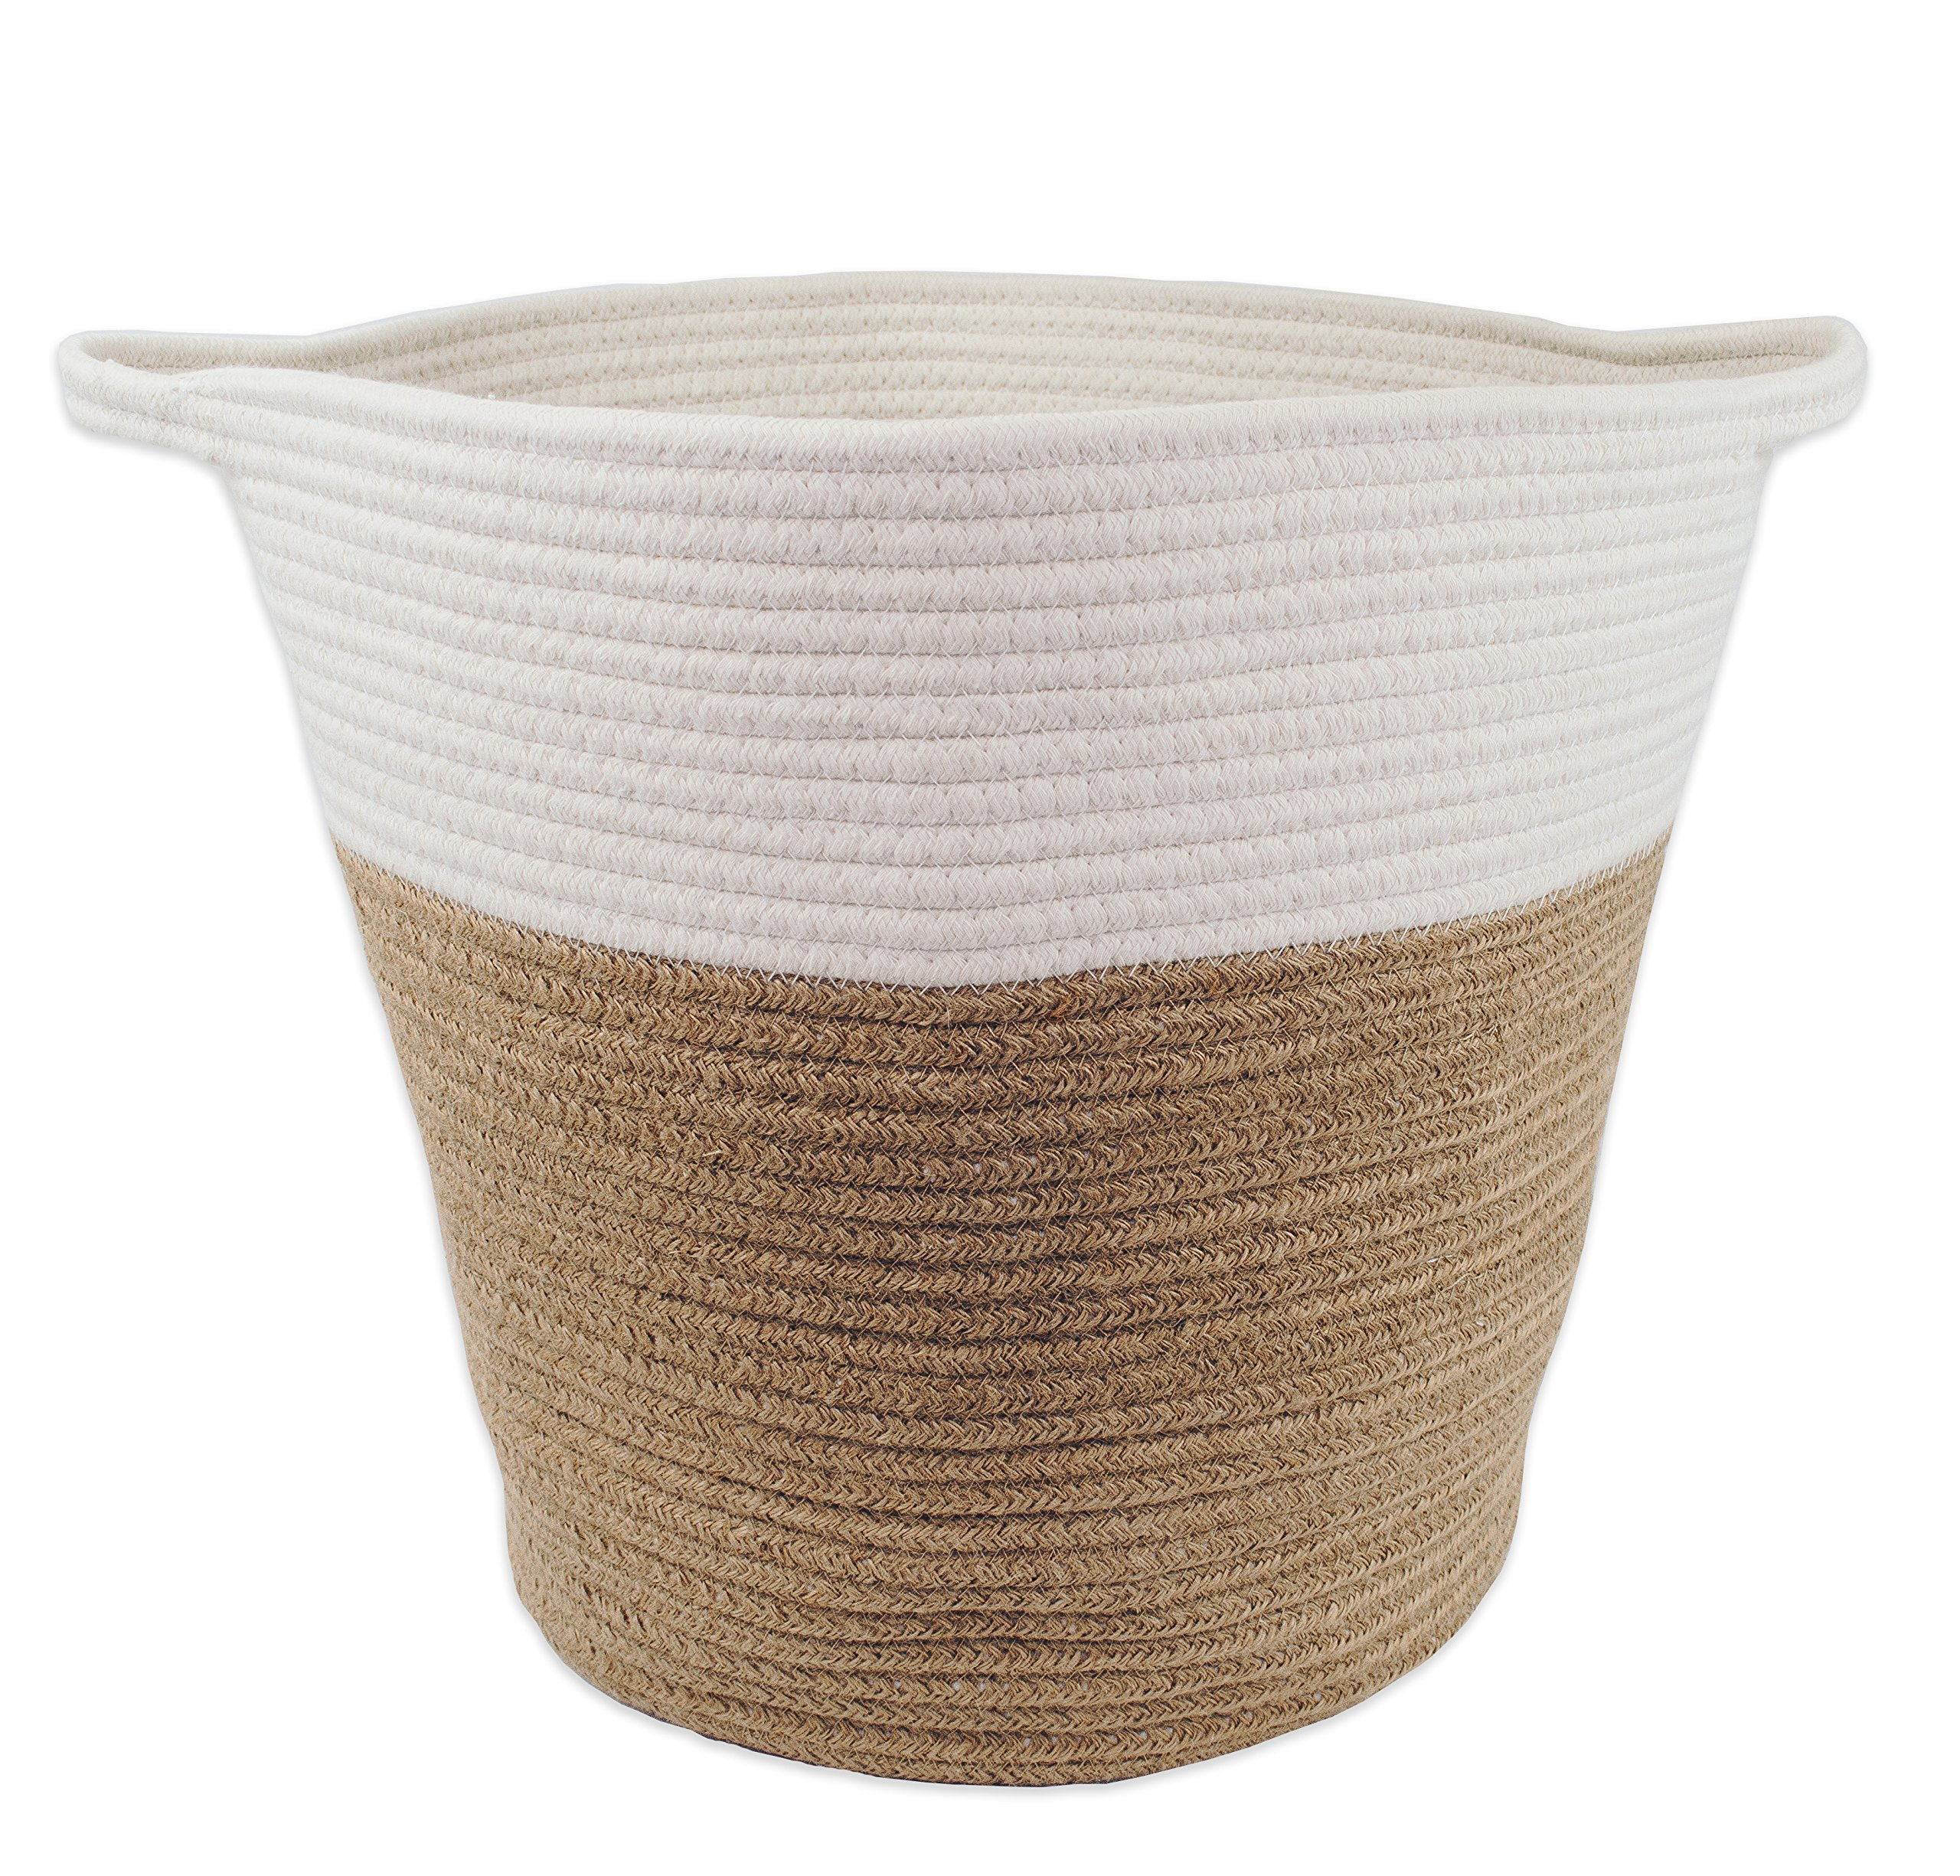 Large Toys Storage Basket for Nursery Or Living Room 16'' x 15'', Jute and Cotton Rope by Monarch Co.